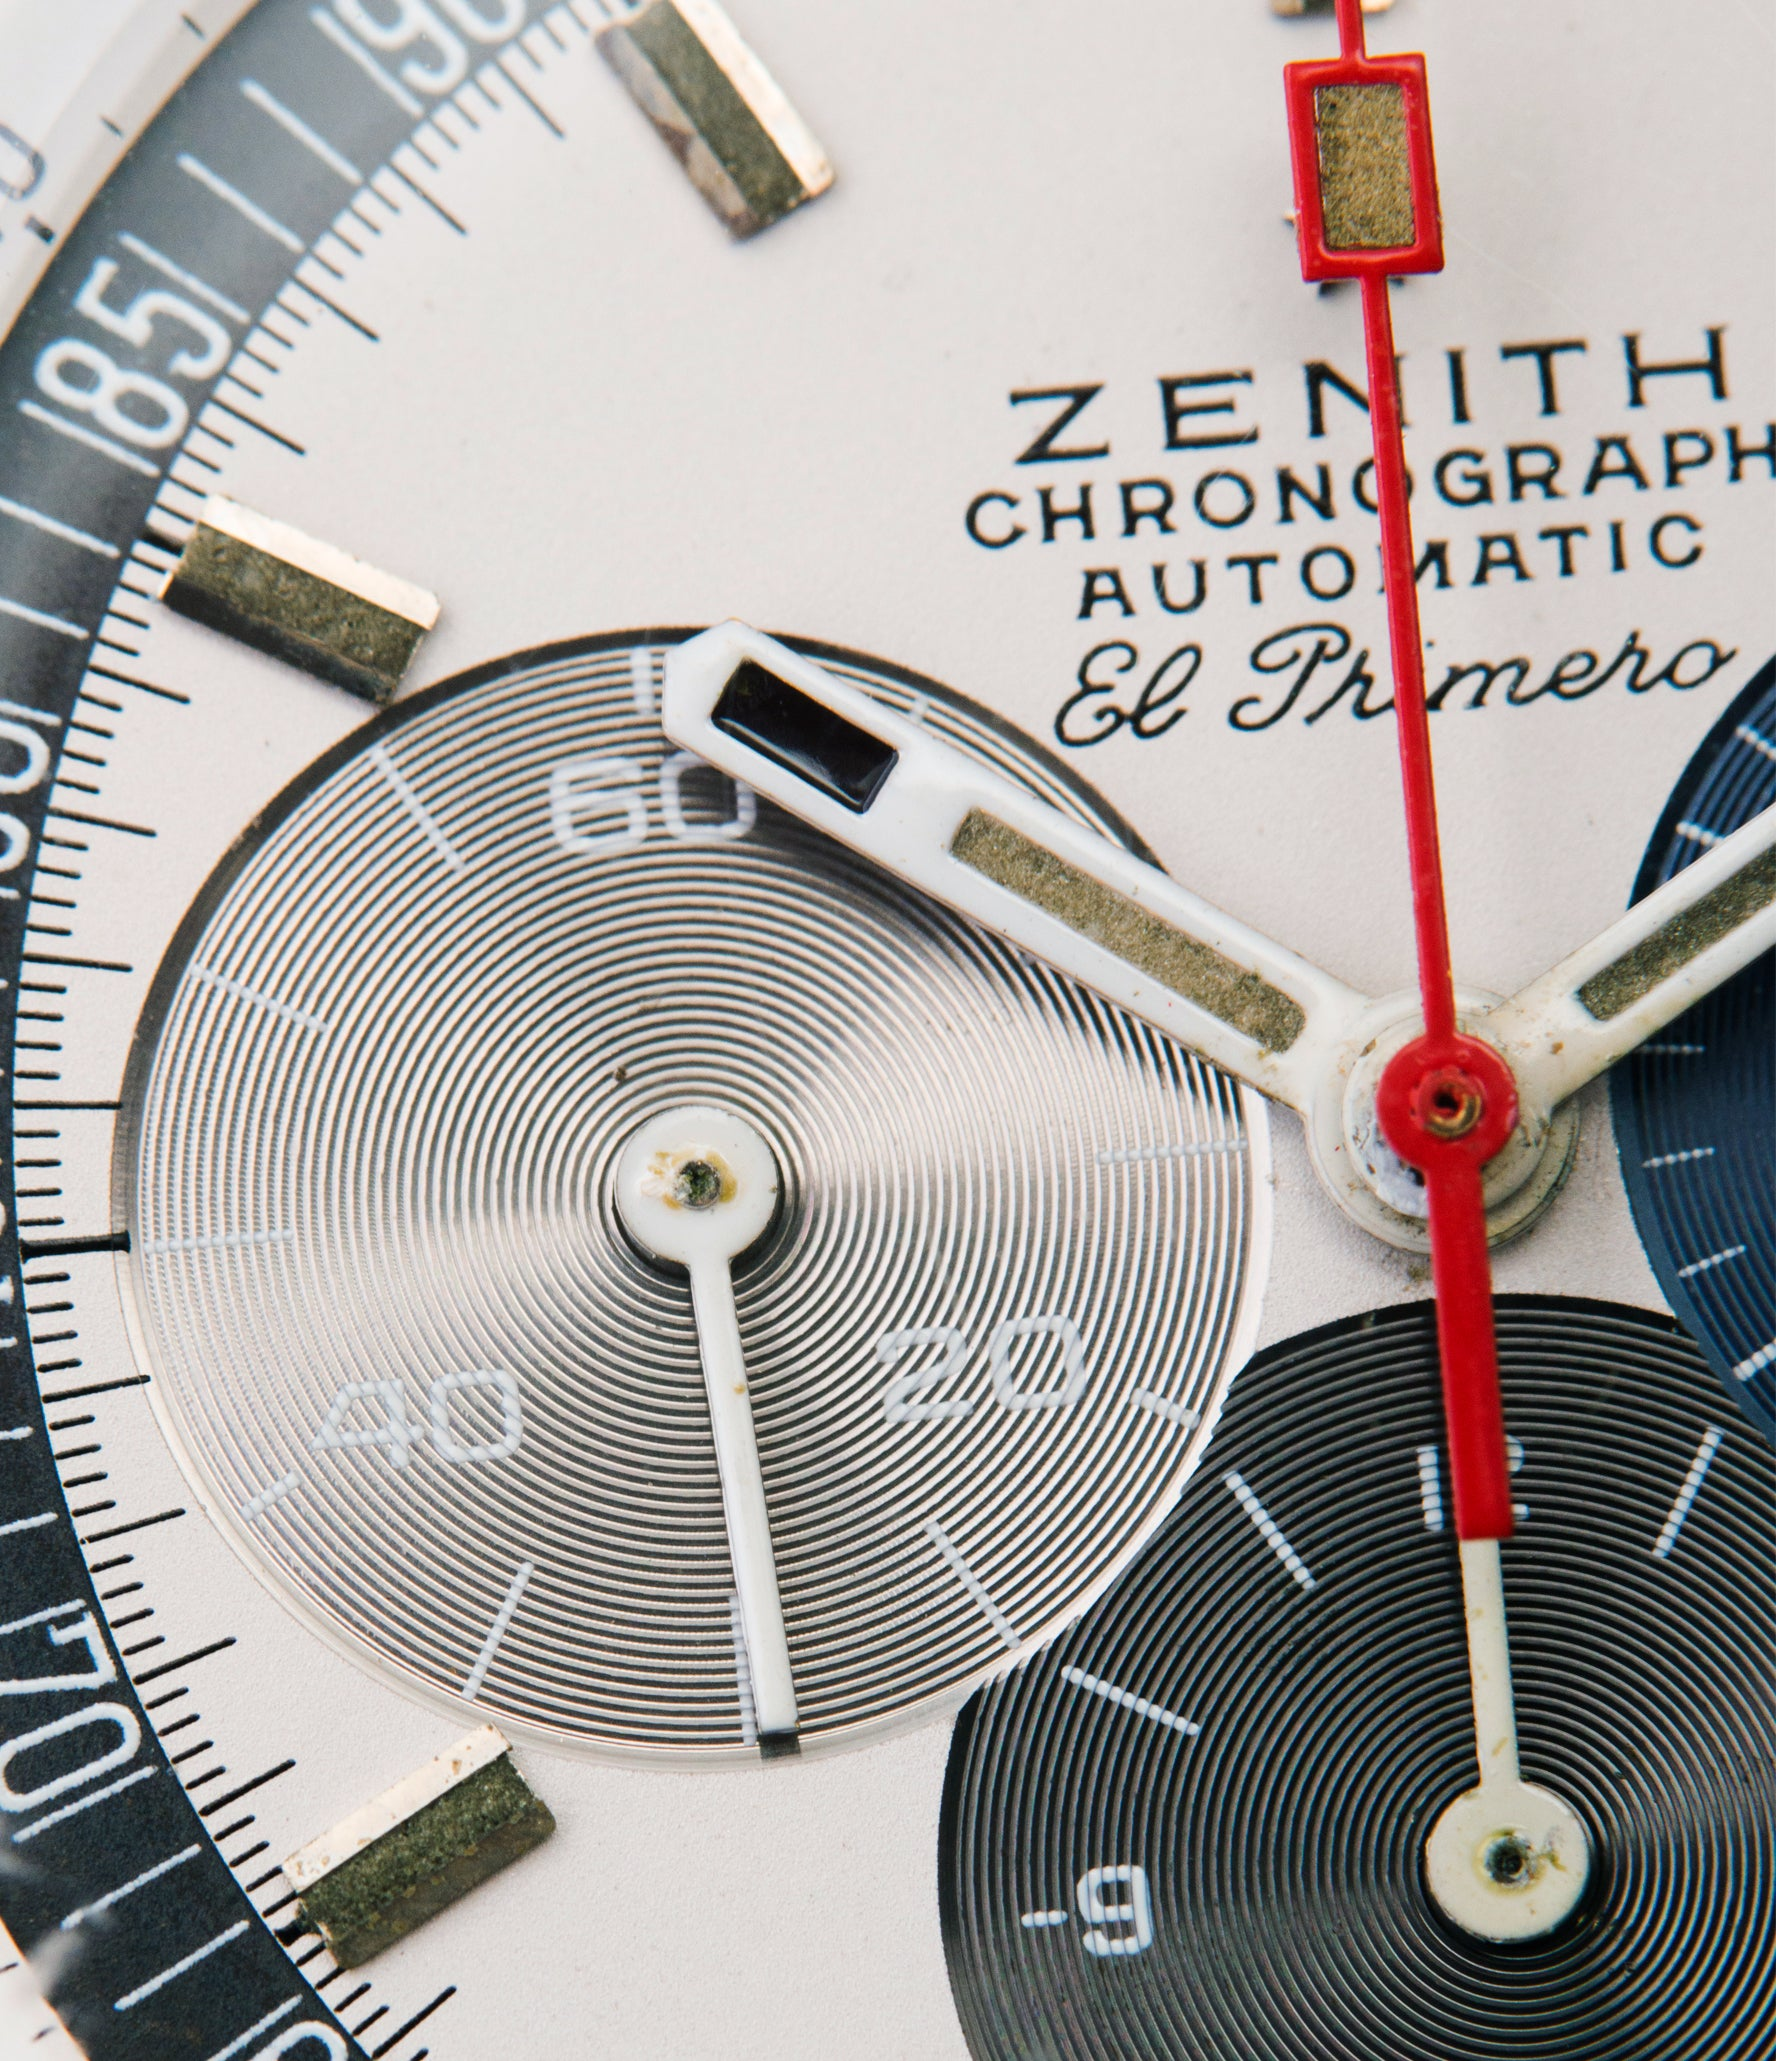 Zenith Chronograph Automatic El Primero three-register dial A386 rare vintage watch at A Collected Man London